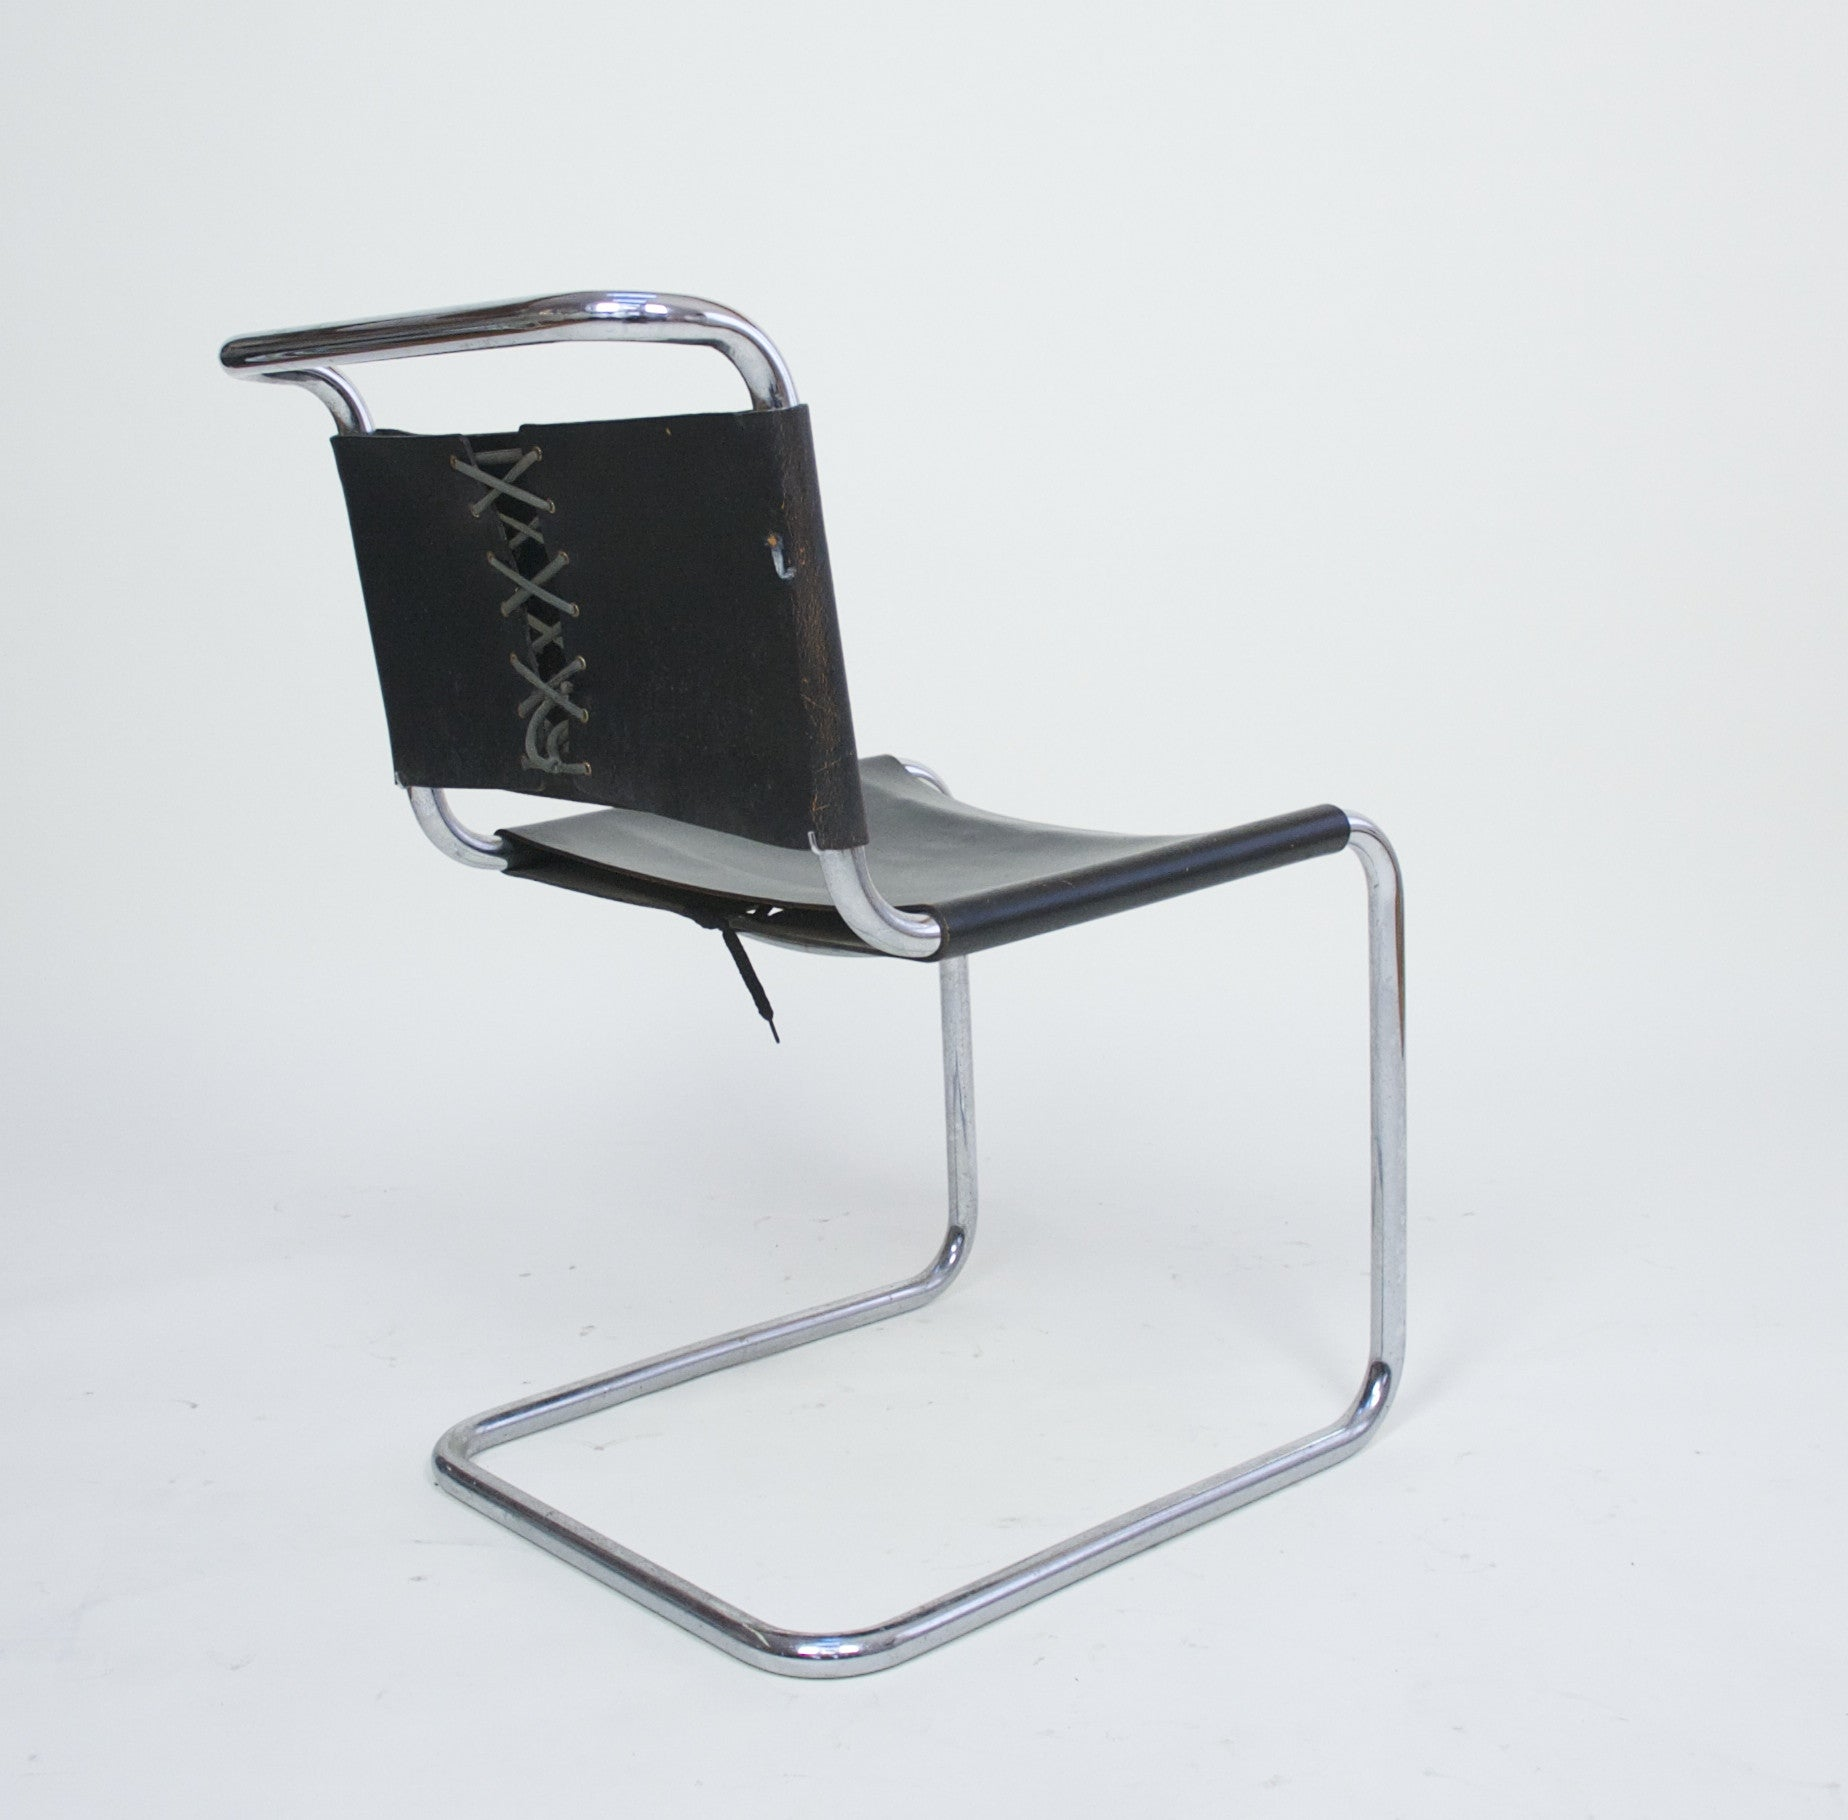 Knoll International Marcel Breuer B33 Chair Bauhaus Era – D ROSE MOD